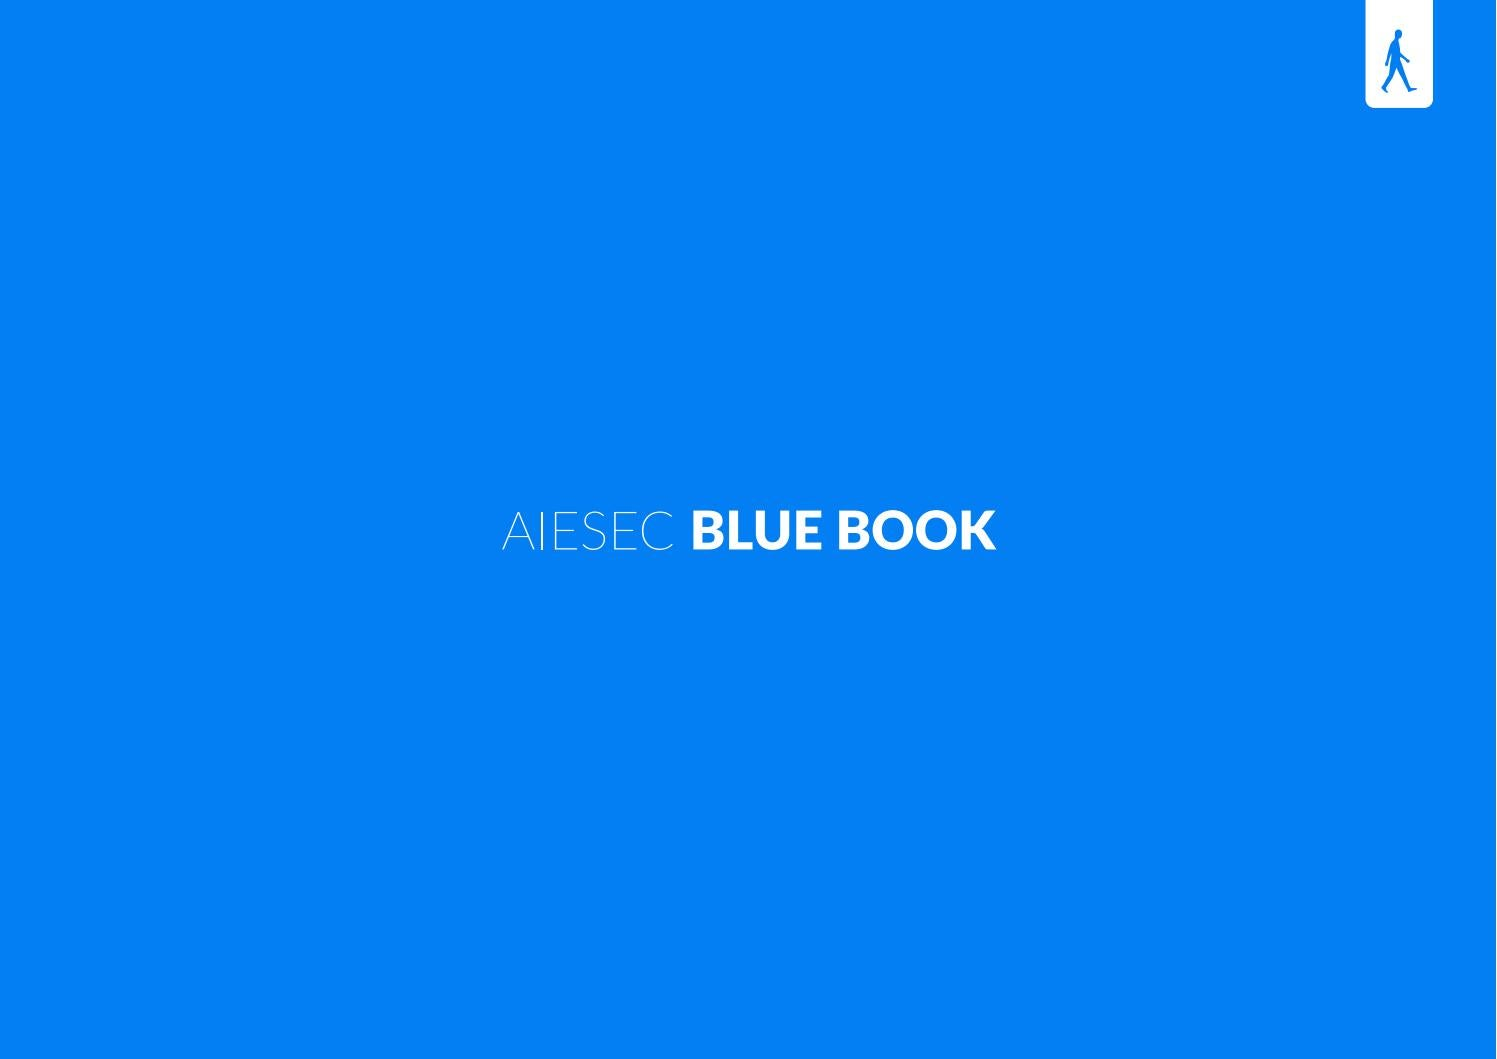 Aiesec Global Brand Guidelines Blue Book Aiesec By Sabino Alejandro Hernandez Armas Issuu,Creative Ways To Hang Curtains Without A Rod